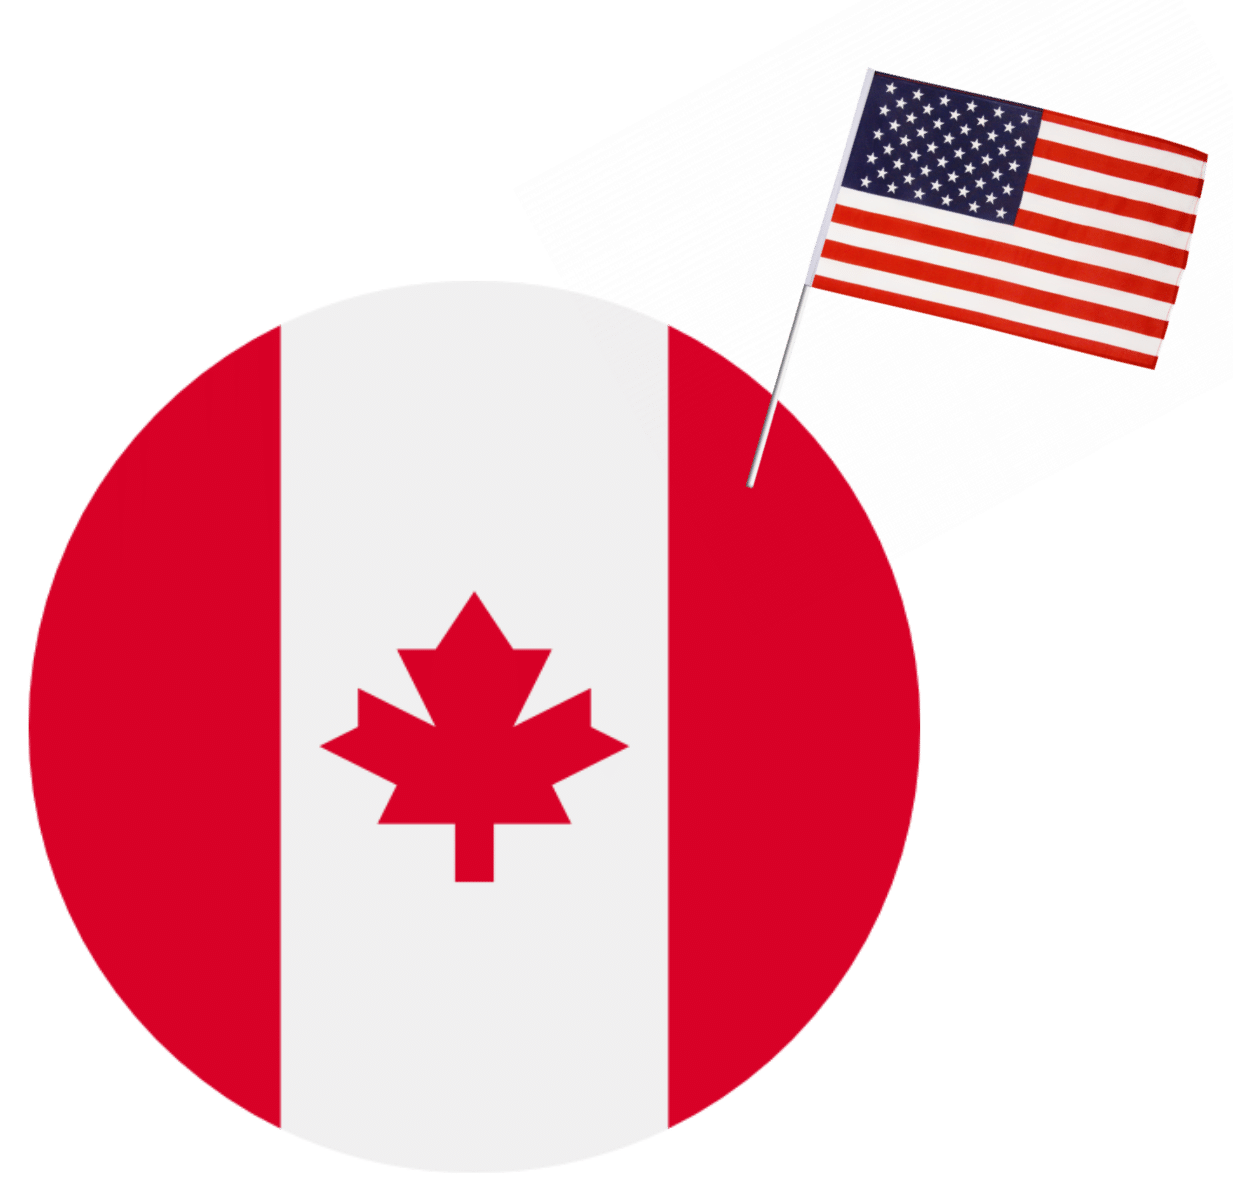 canadian-flag-scarlett-clint-top-memory-games-for-seniors-and-adults-elders-with-dementia-caregiver-family-cognitive-training-on-tablet-ipad-android